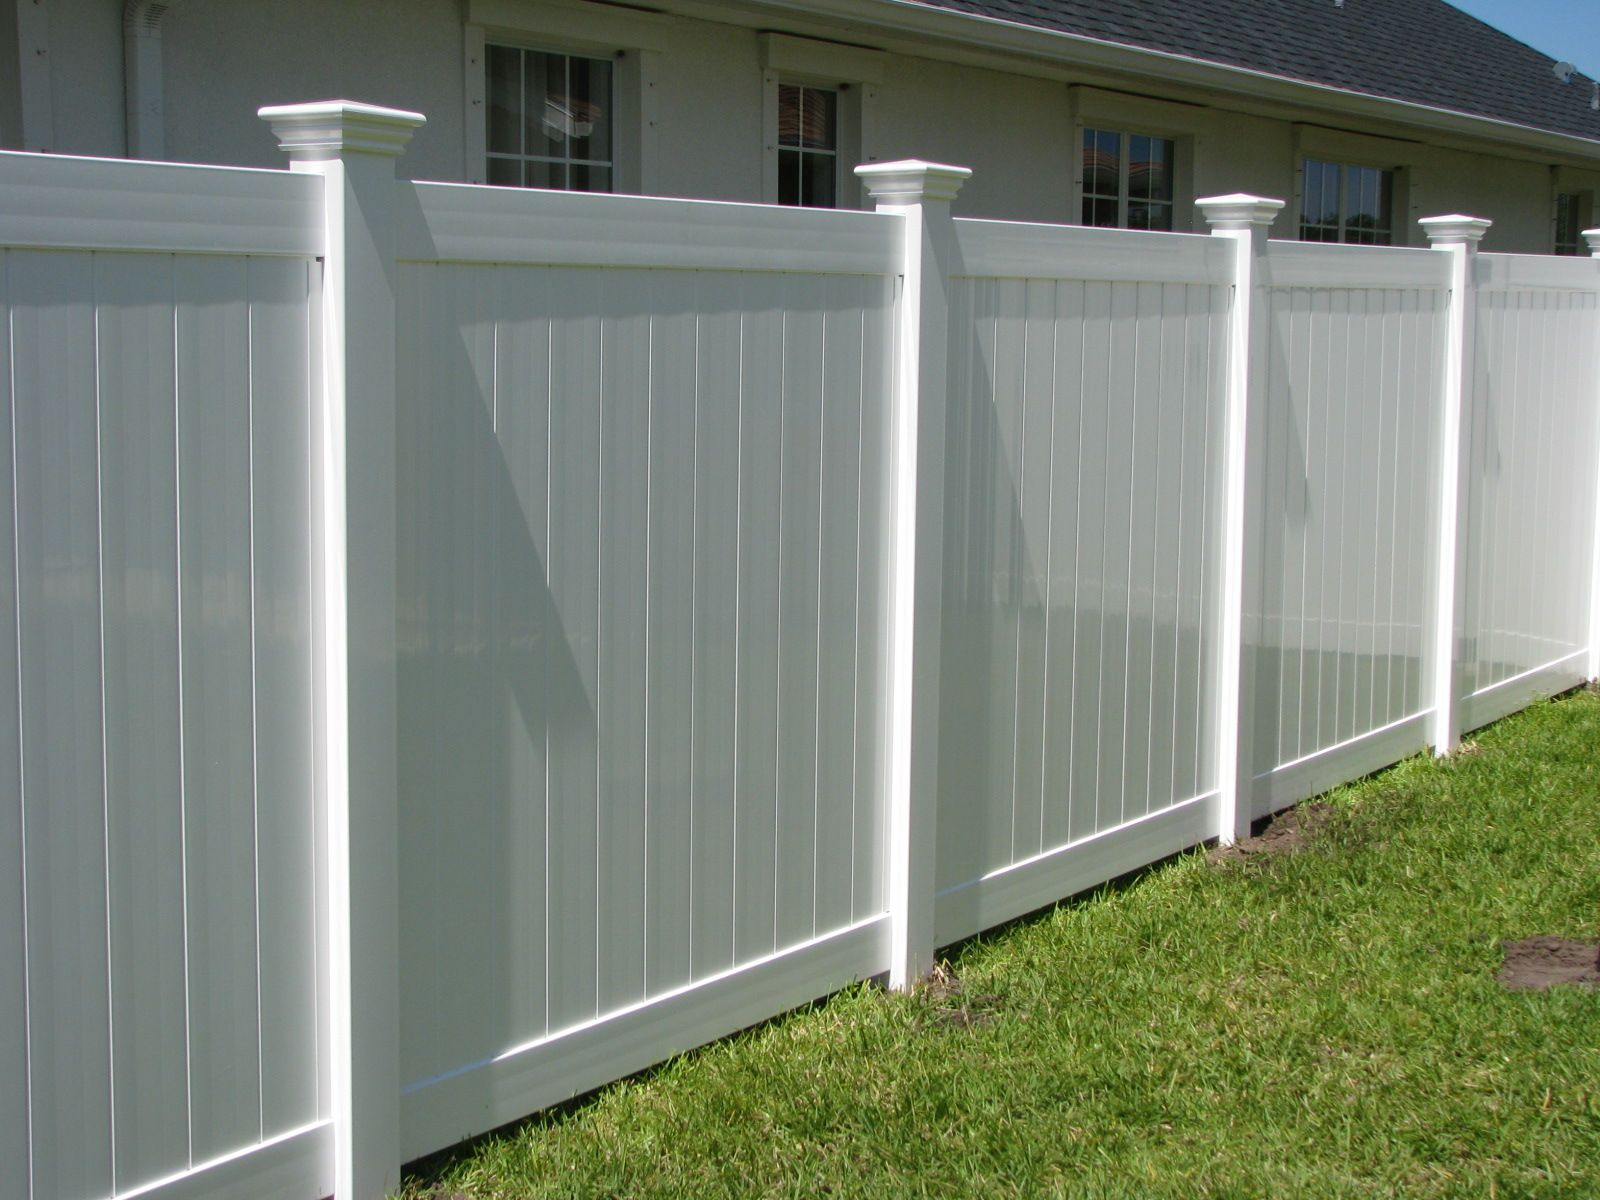 Diy Vinyl Fence Supplies Classic White Vinyl Privacy Fence With Post Caps Mossy Oak Fence